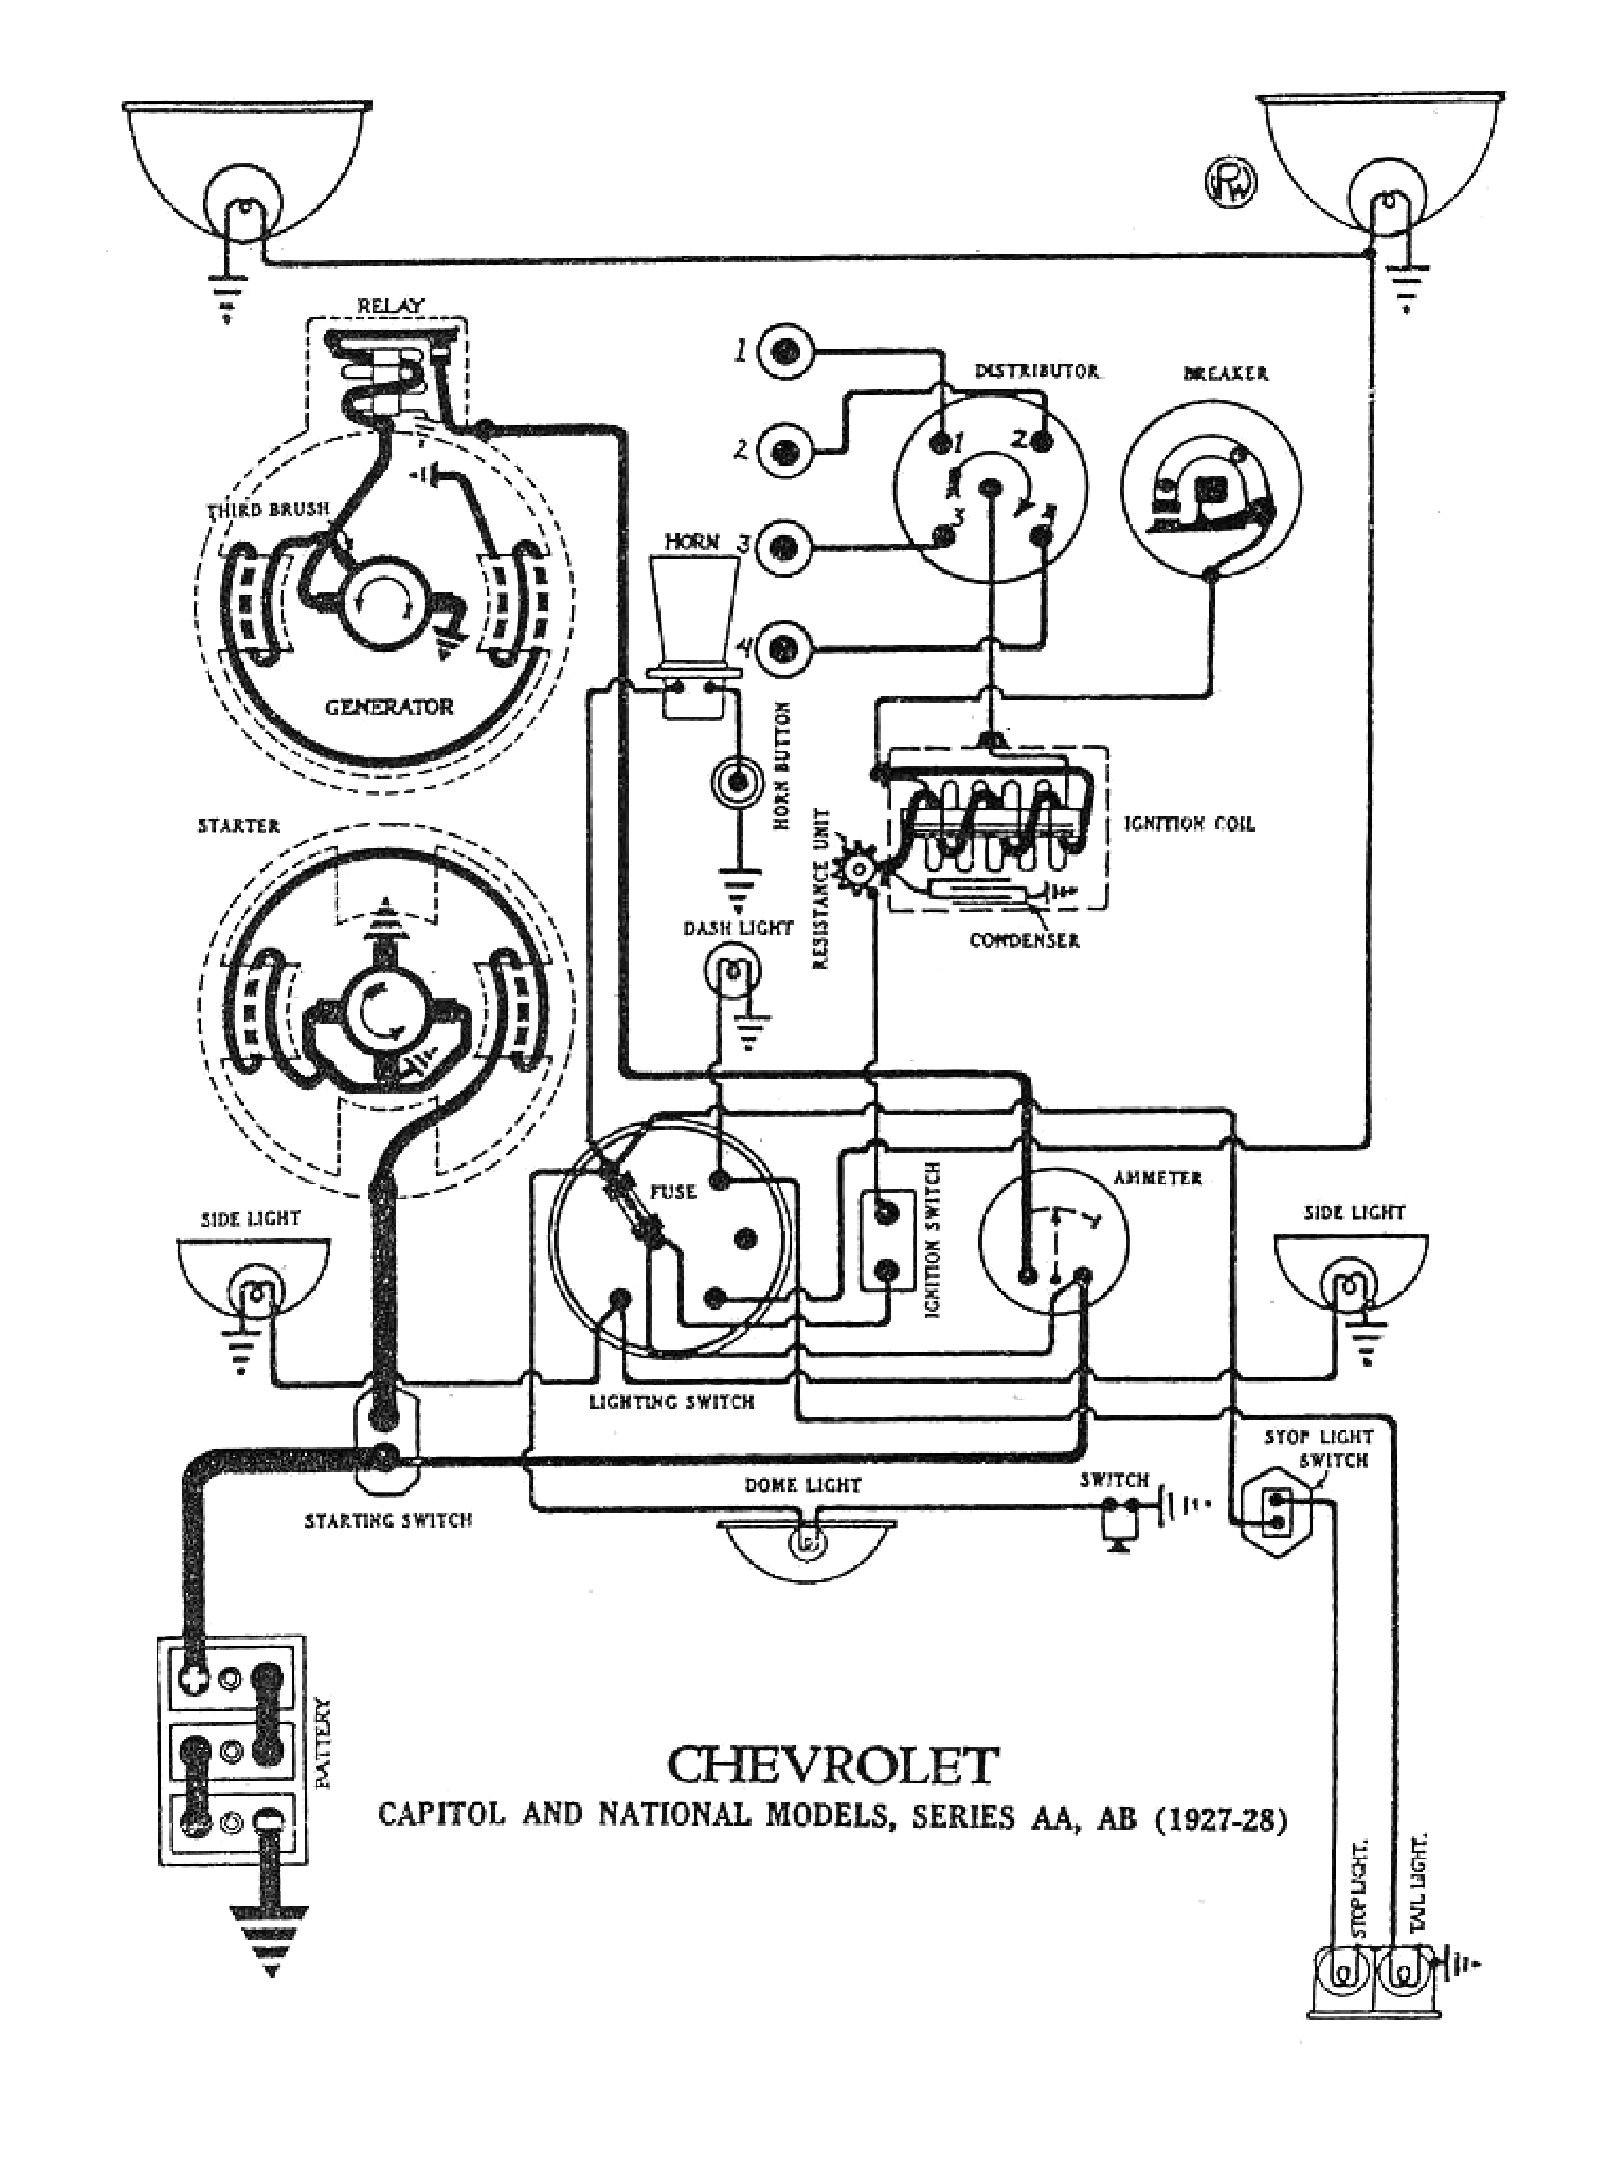 216 Chevy Engine Diagram Wiring Diagrams Of 216 Chevy Engine Diagram